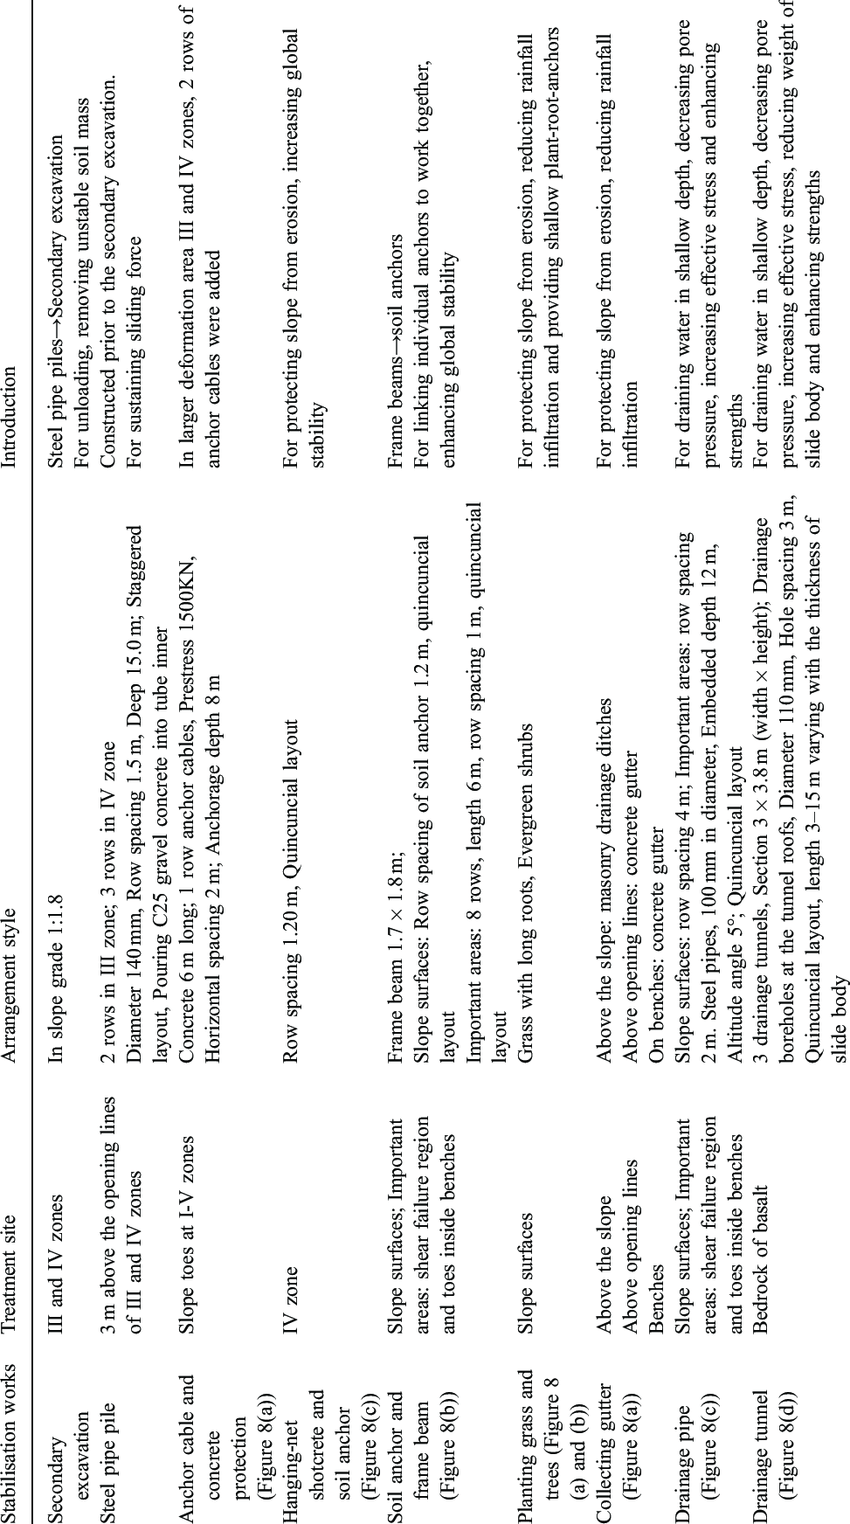 Summary of the stabilisation works and related design